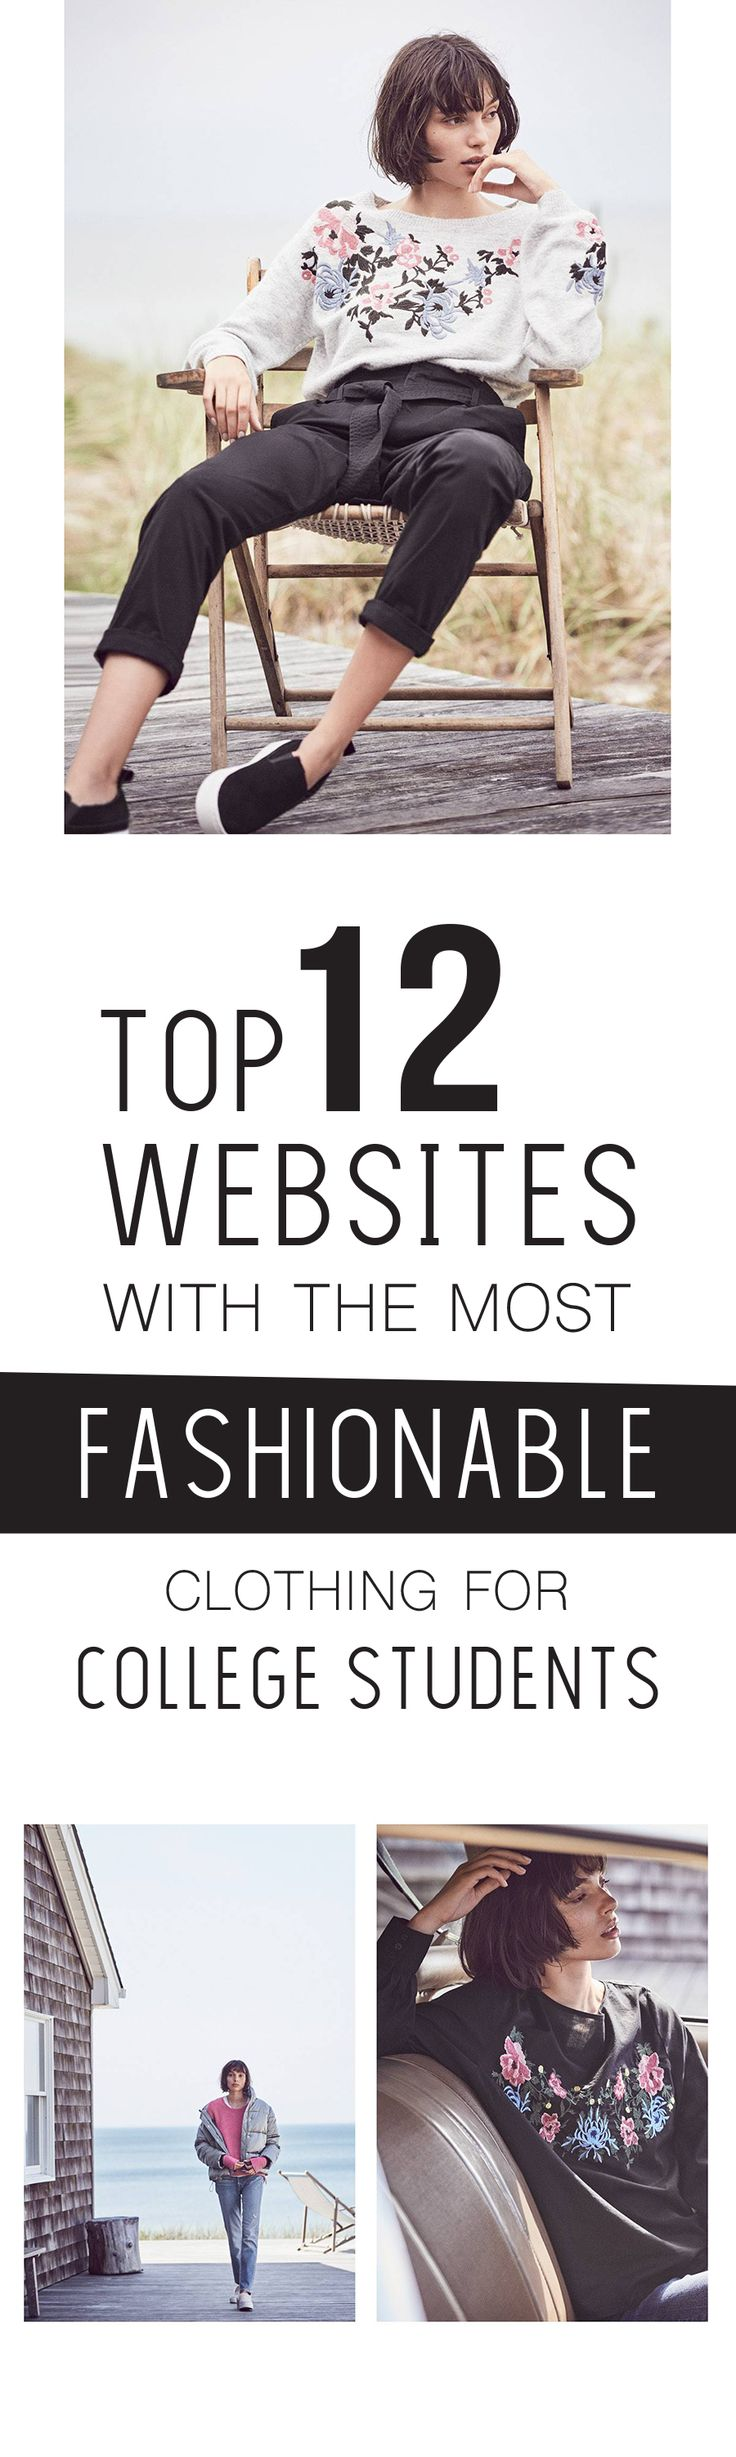 Top 12 Websites With the Most Fashionable and Affordable Clothing for College Students!